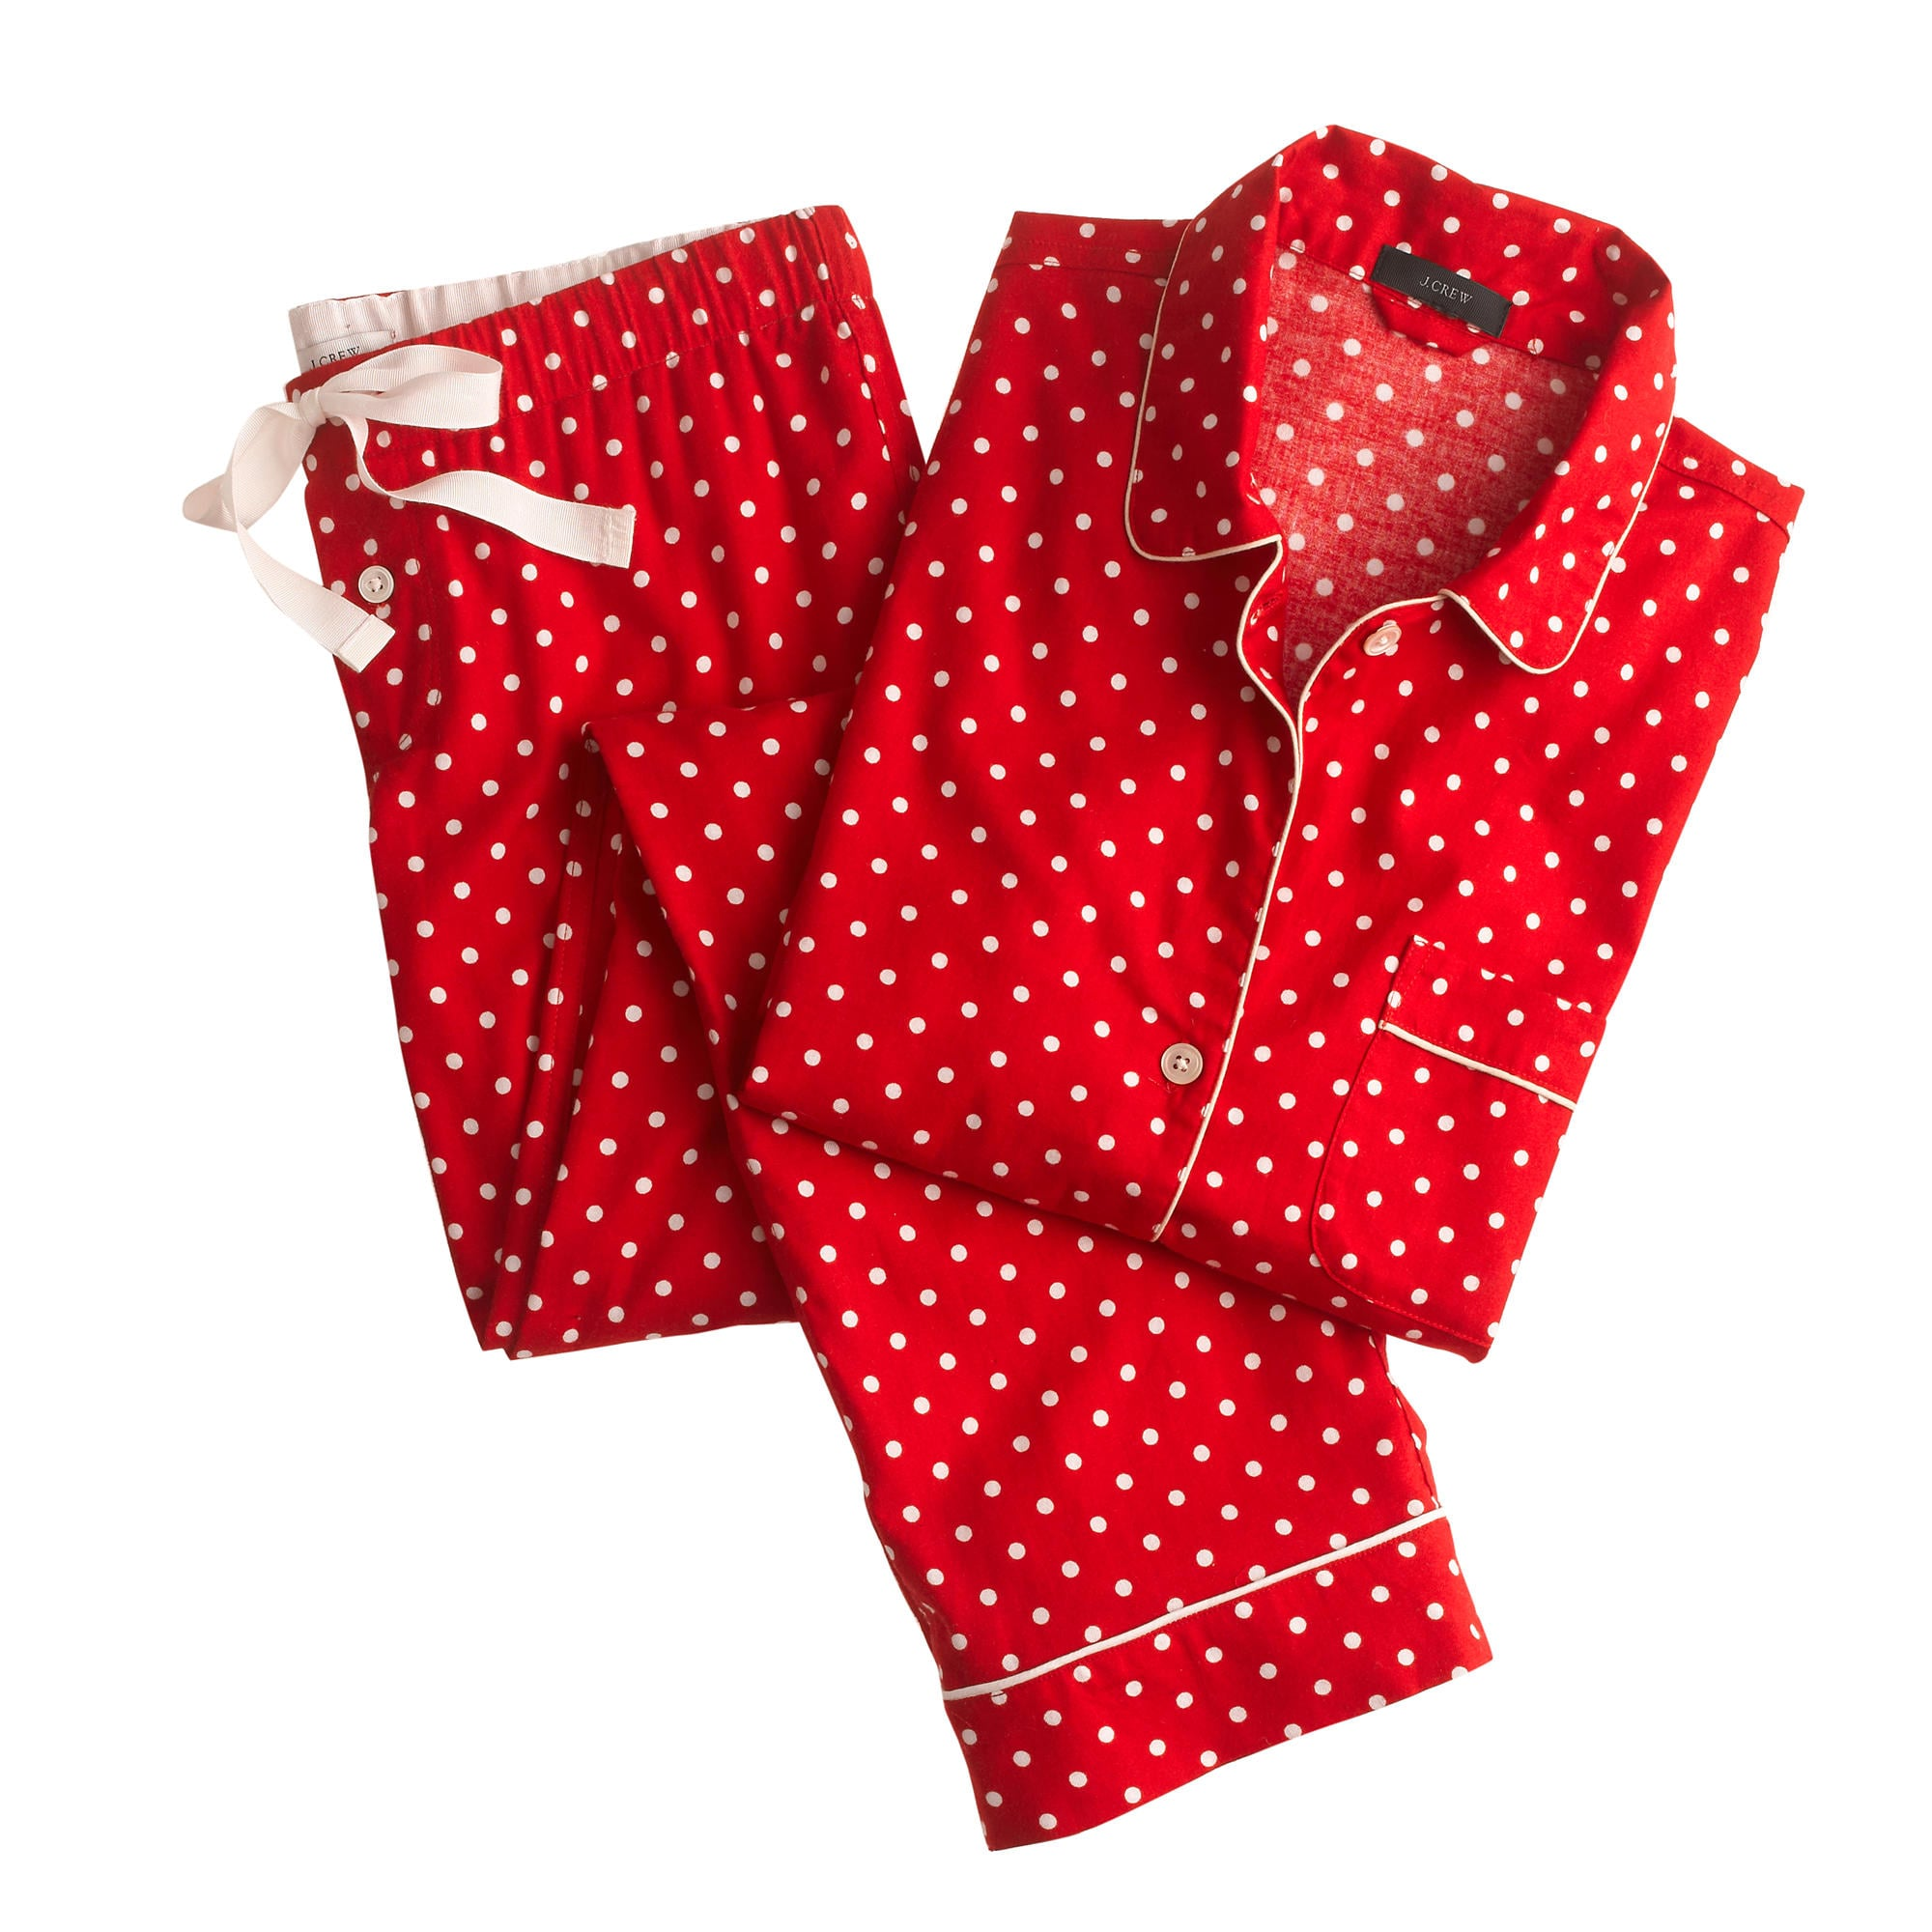 Holiday Pajamas. Make the season merry and bright with Christmas Pajamas from Kohl's! Featuring all the designs and styles that will put you in a festive mood, our selection of Holiday Pajamas offers timeless appeal. Find all the Christmas essentials and sleepwear you're looking for at Kohl's!